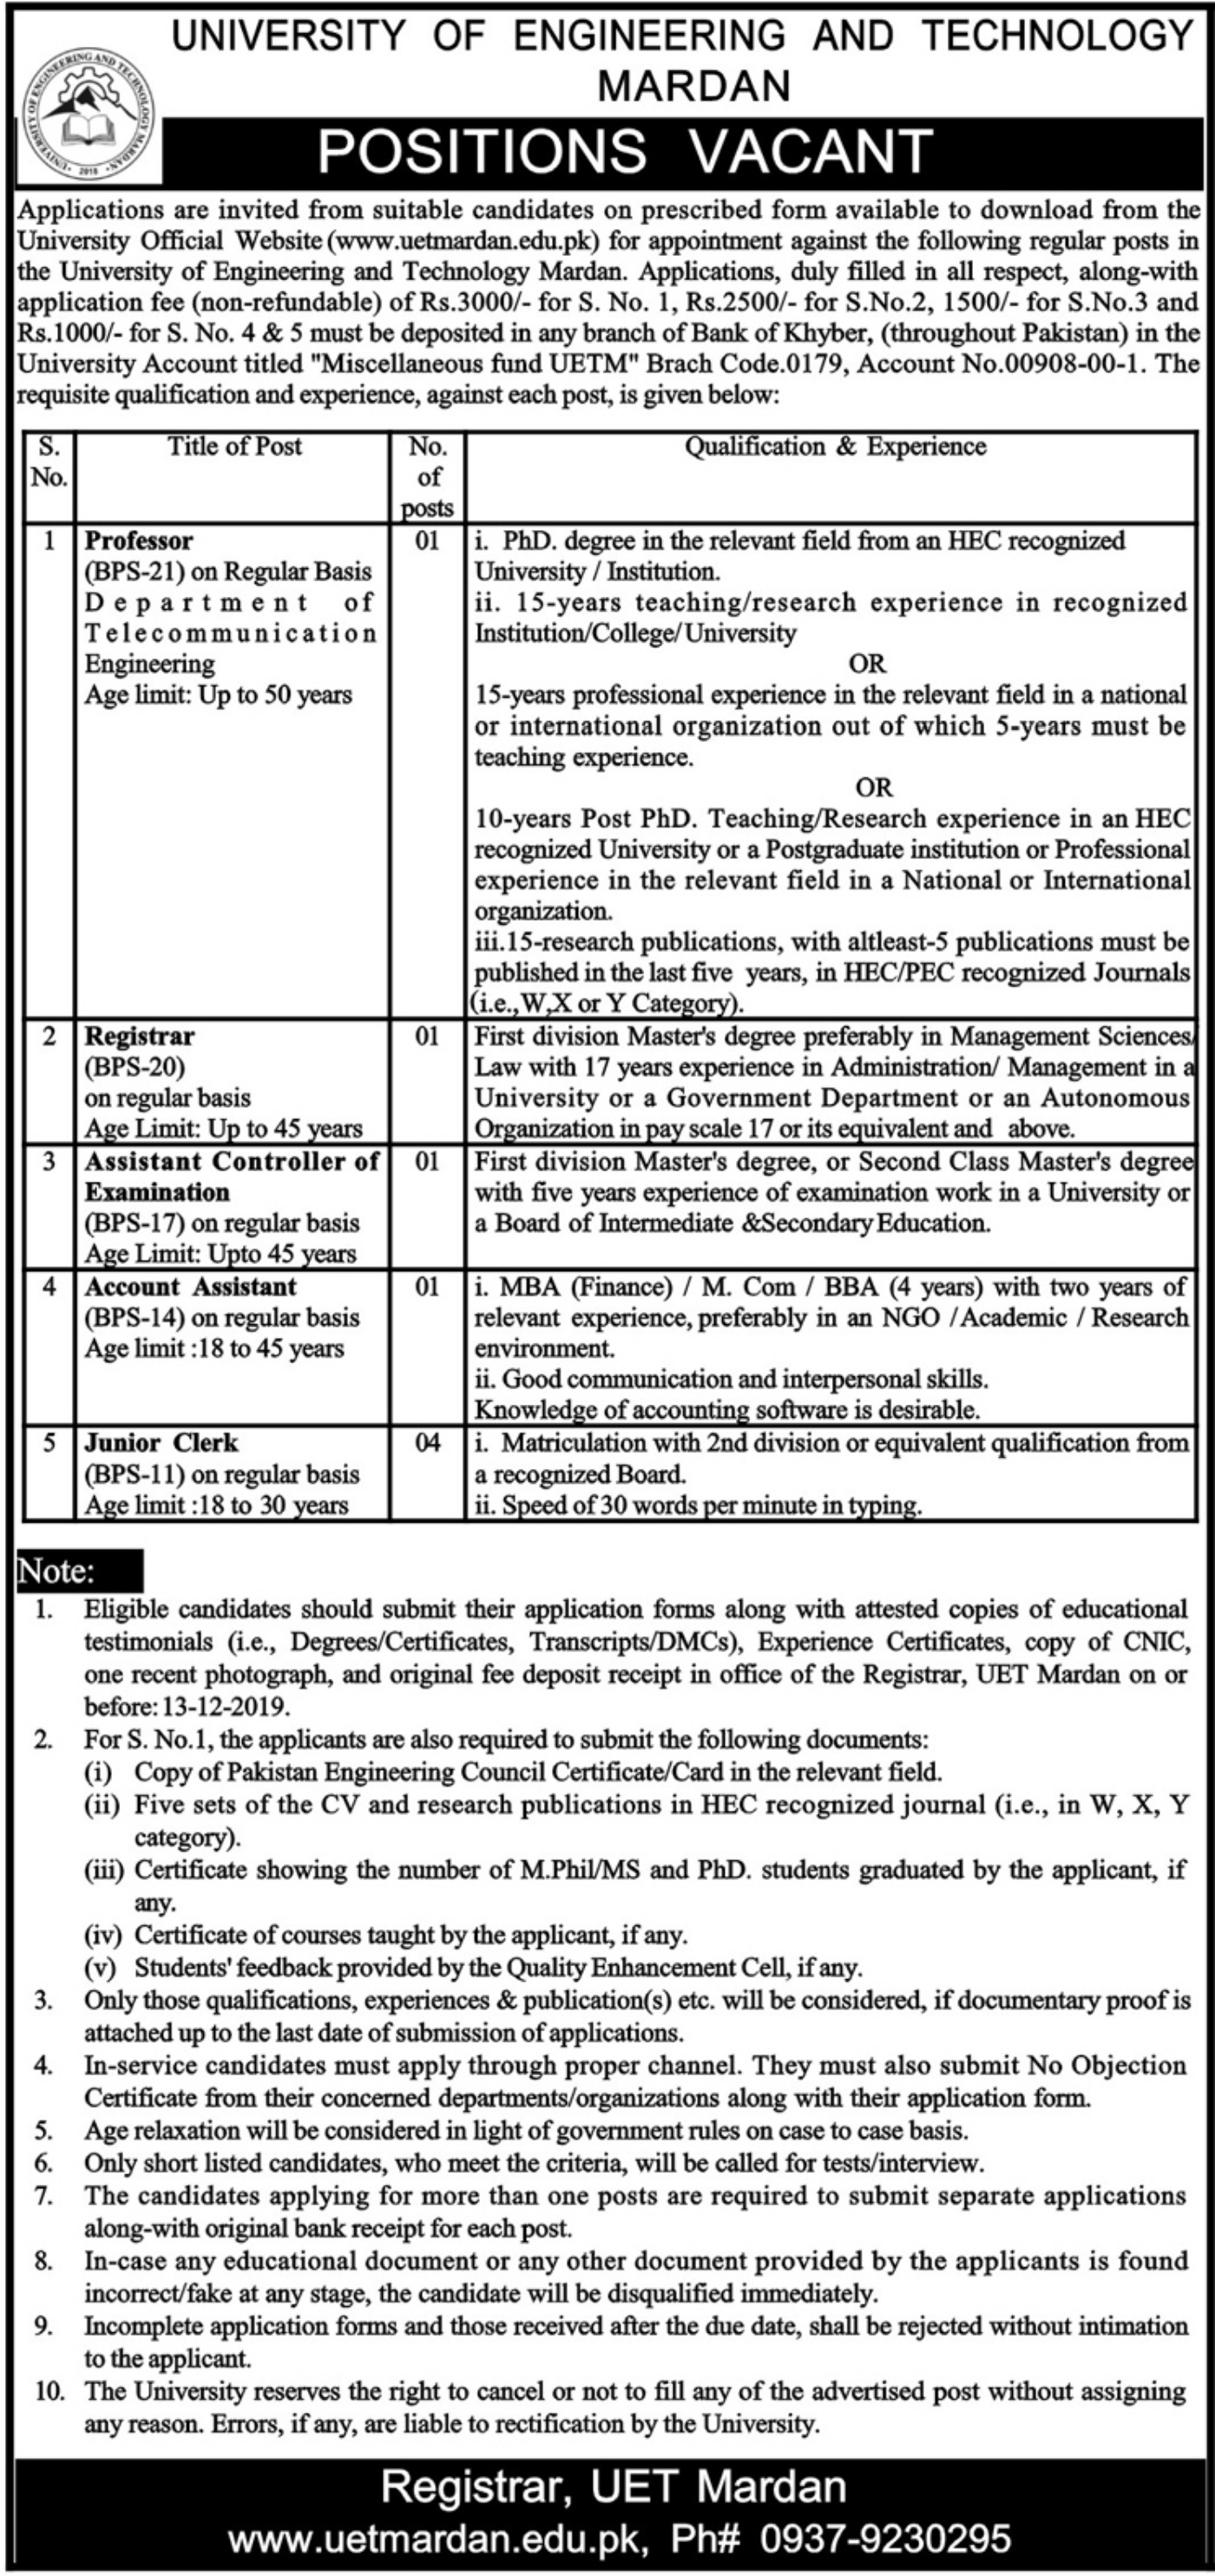 UET Mardan Jobs 2019 University of Engineering & Technology